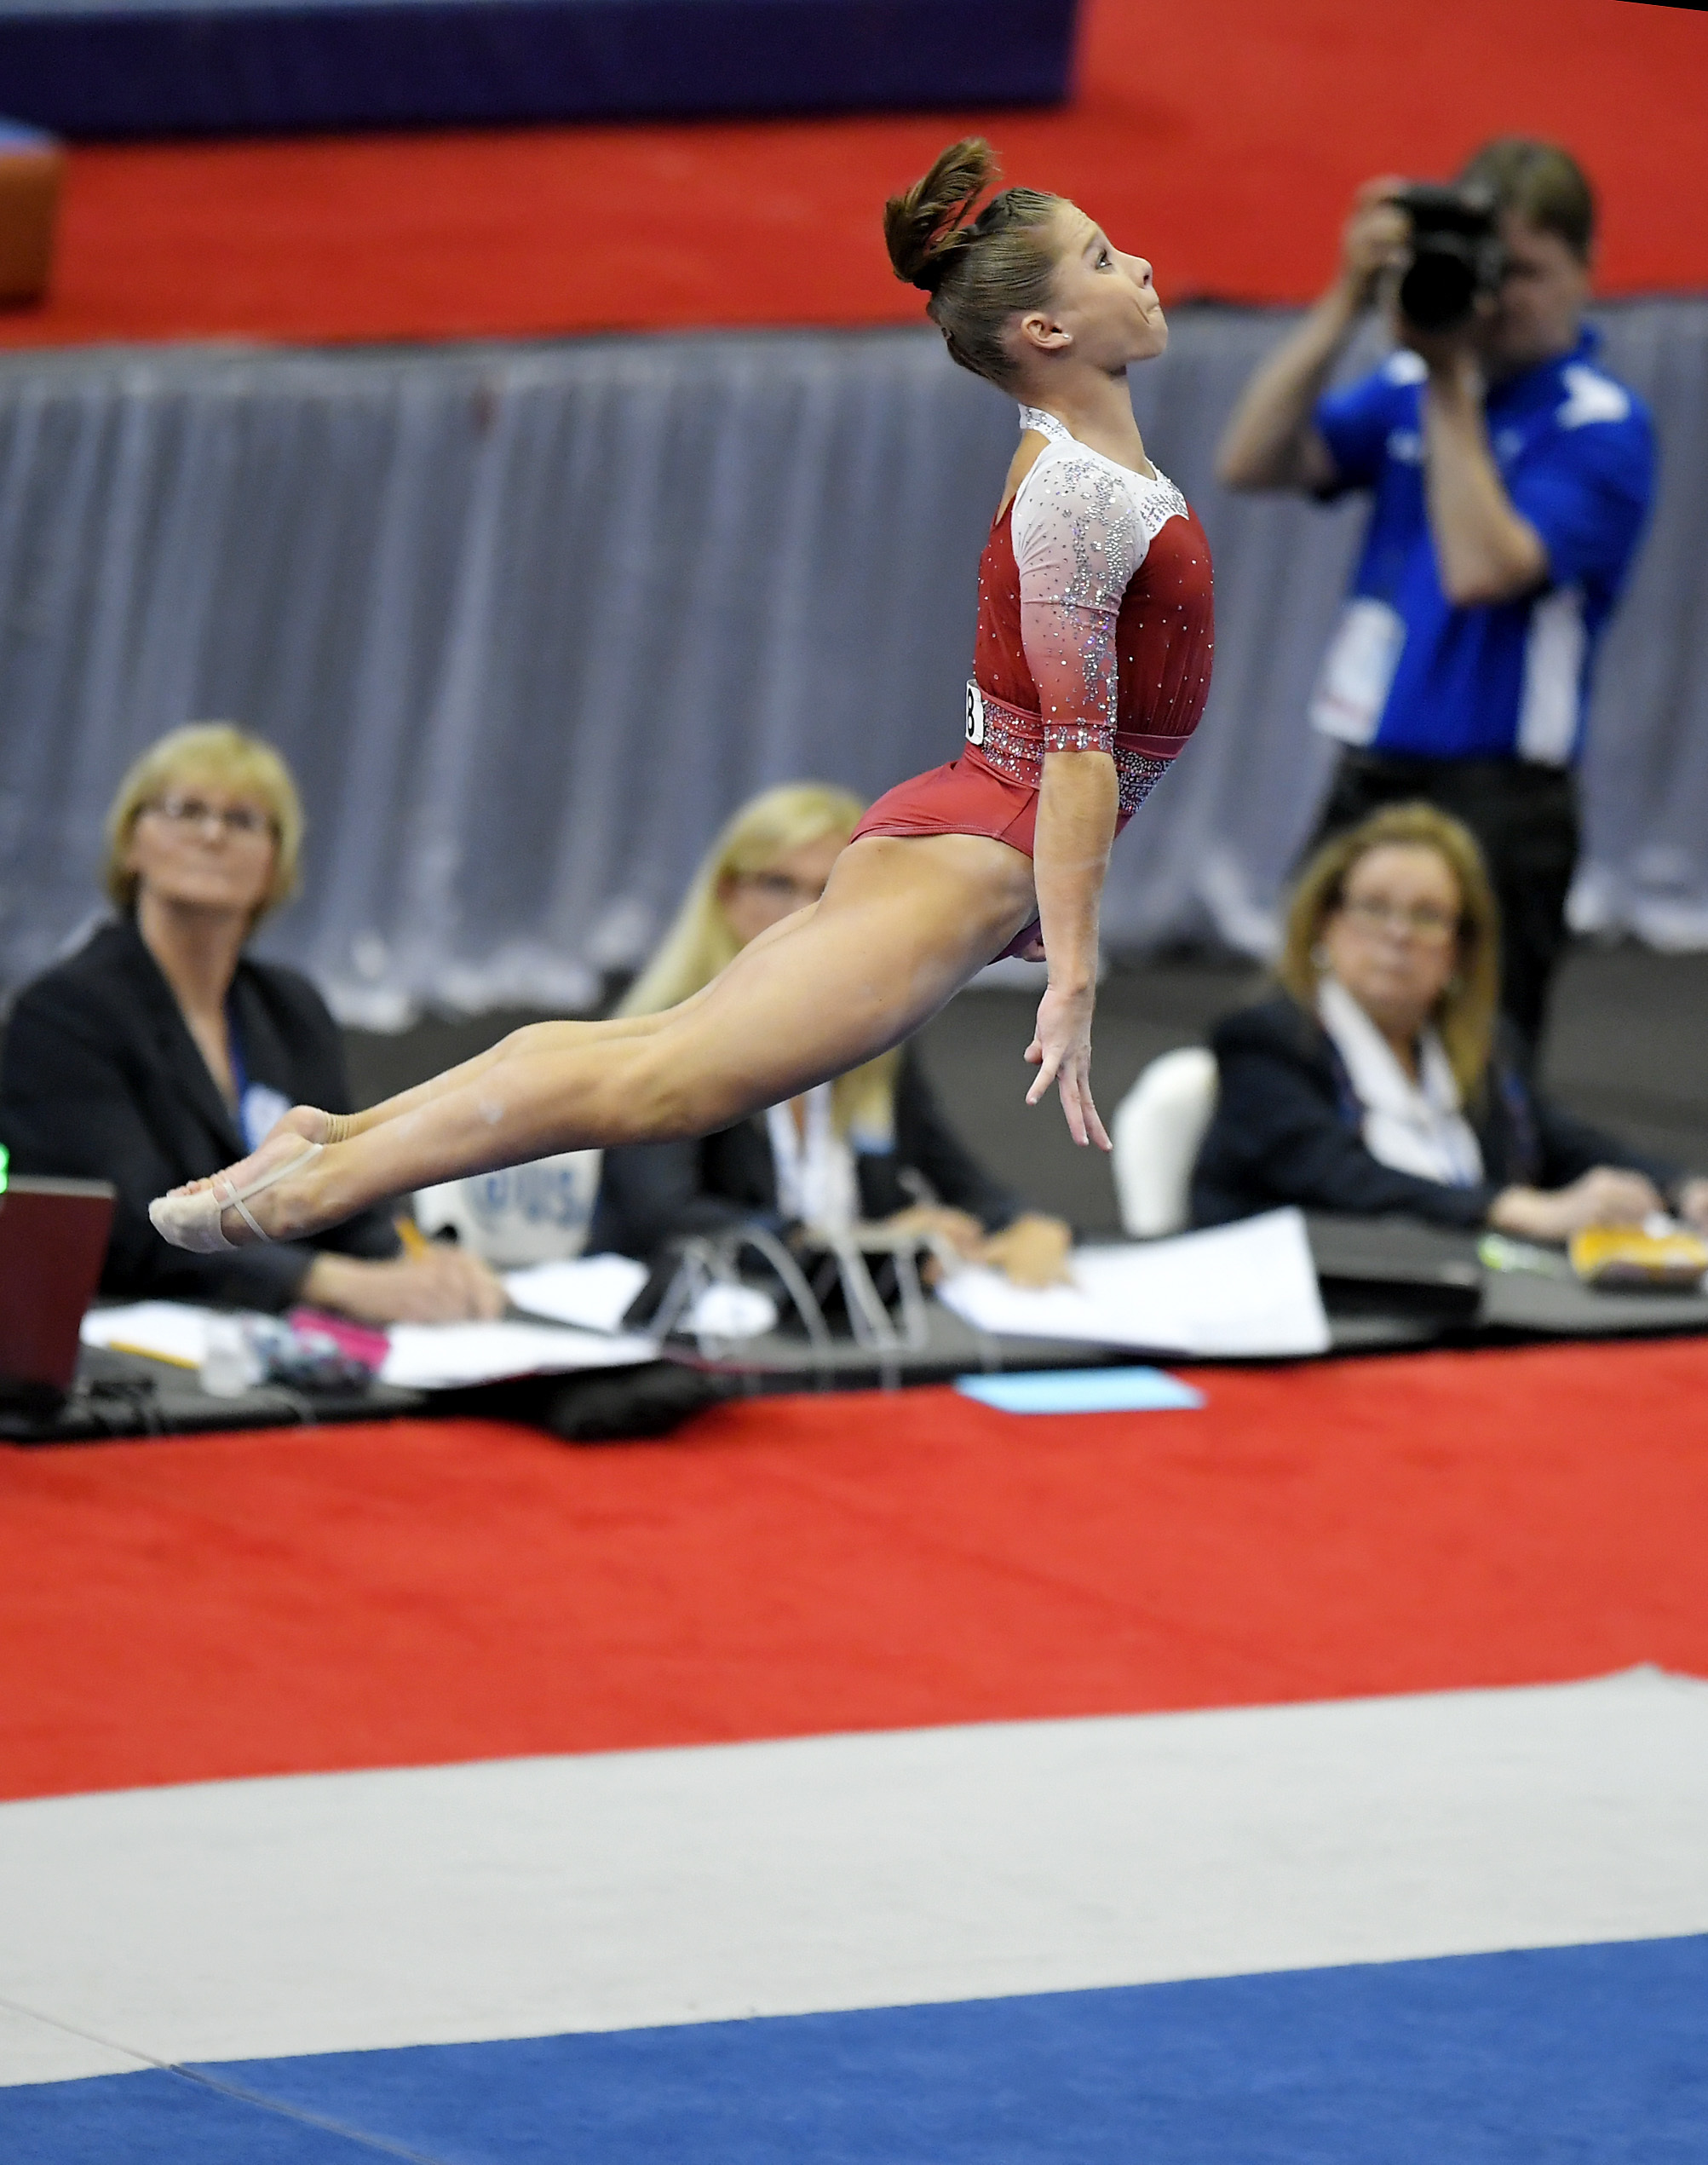 Ragan Smith competes in the floor exercise during women's opening round of the U.S. gymnastics championships, Friday, Aug. 18, 2017, in Anaheim, Calif. (AP Photo/Mark J. Terrill)